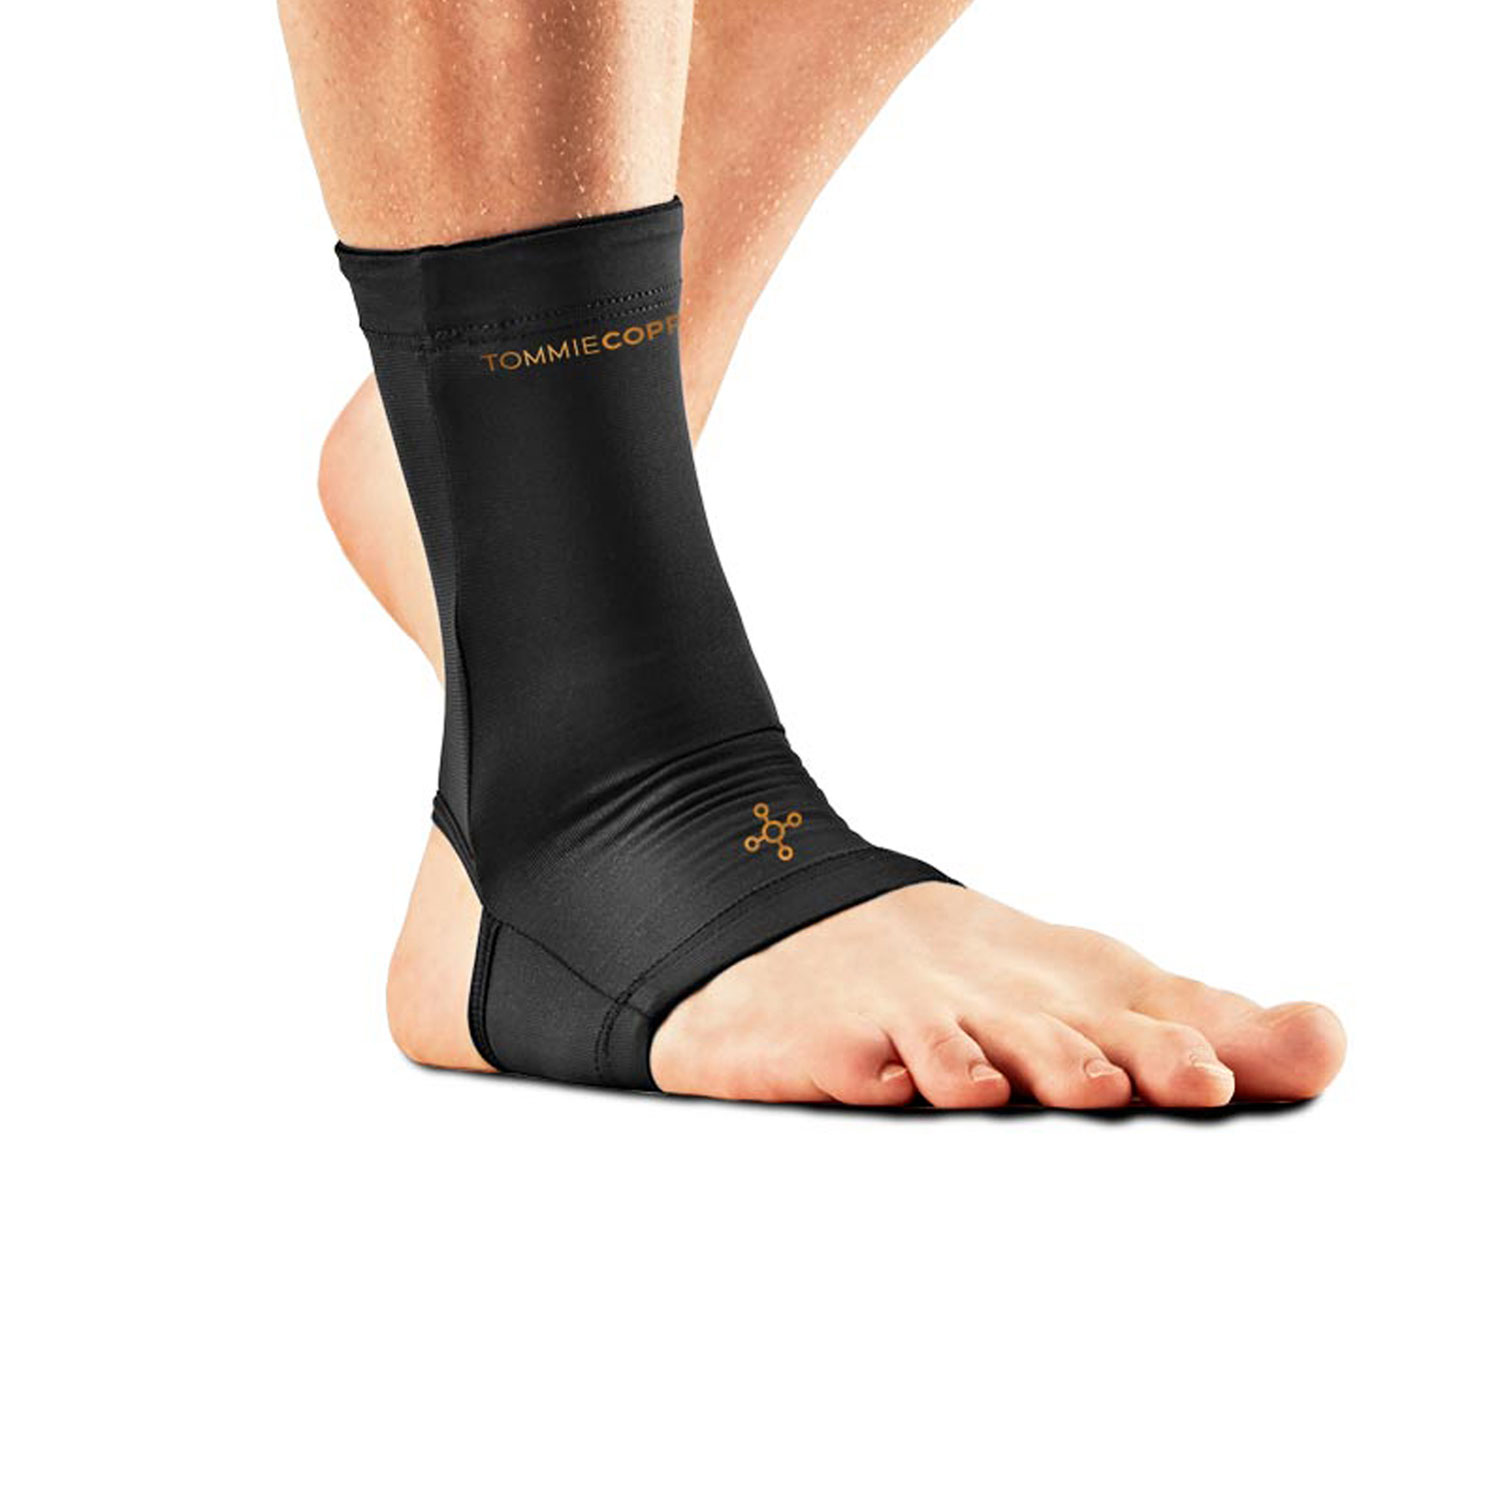 Tommie Copper Men's Ankle Sleeve